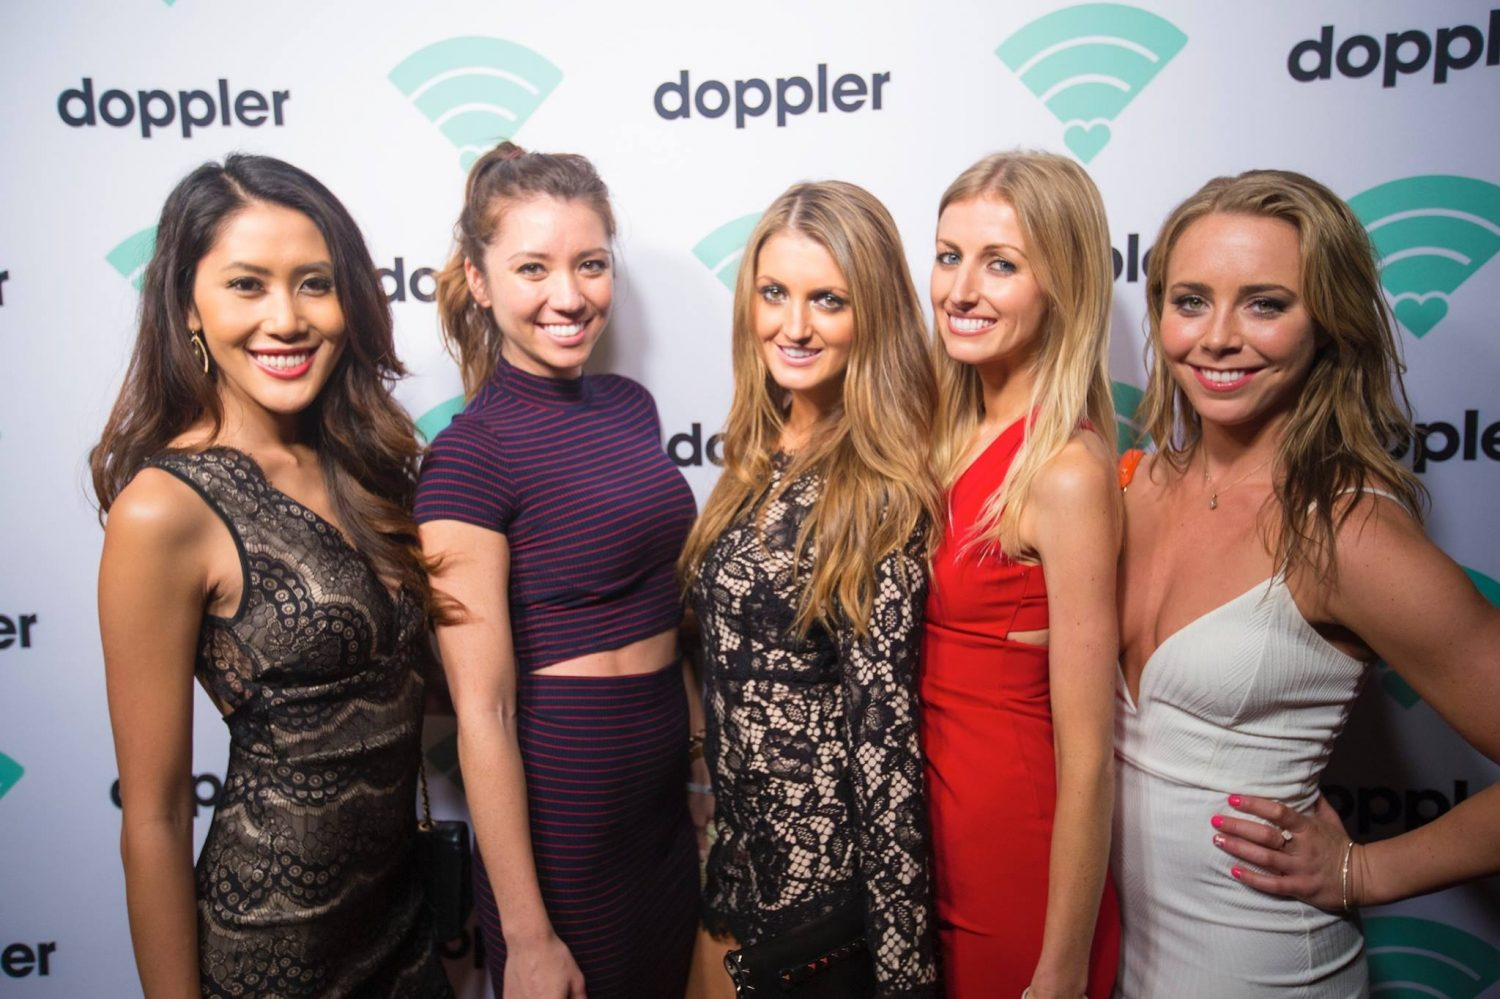 ladies on red carpet at launch party